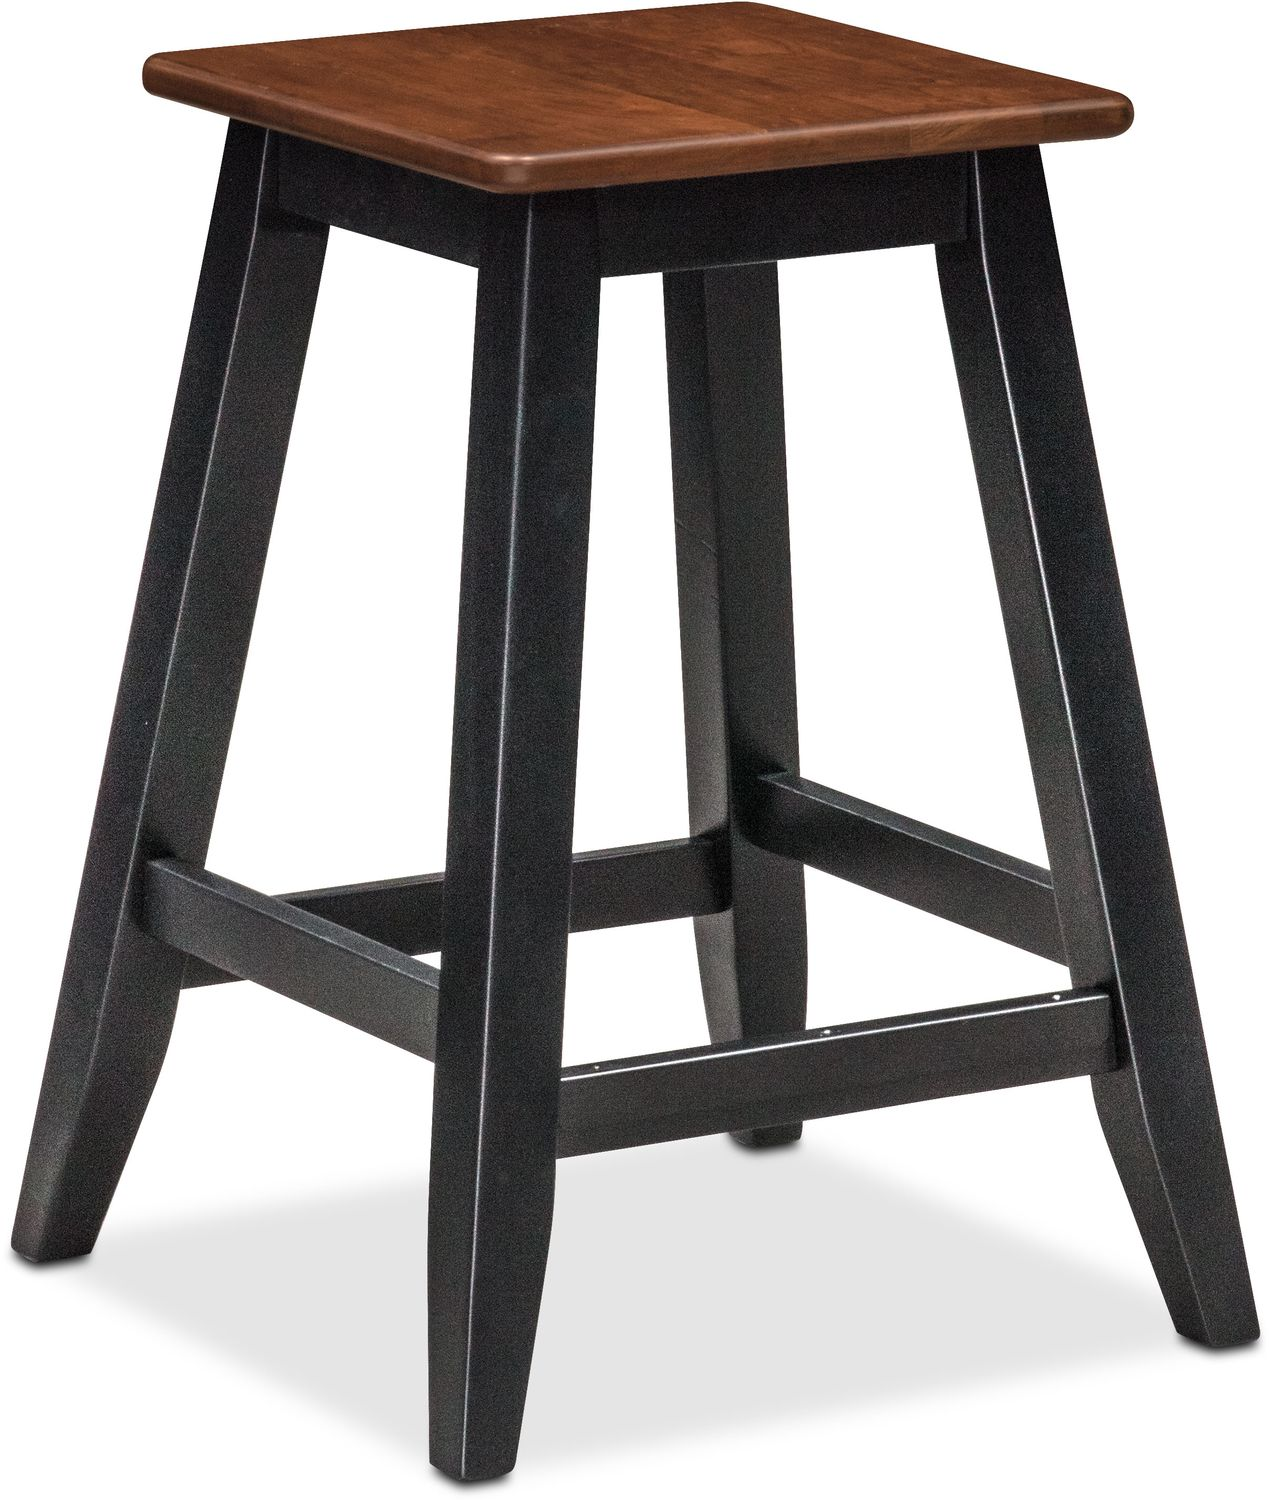 Nantucket Breakfast Bar And 2 Counter Height Stools Black And Cherry Value City Furniture